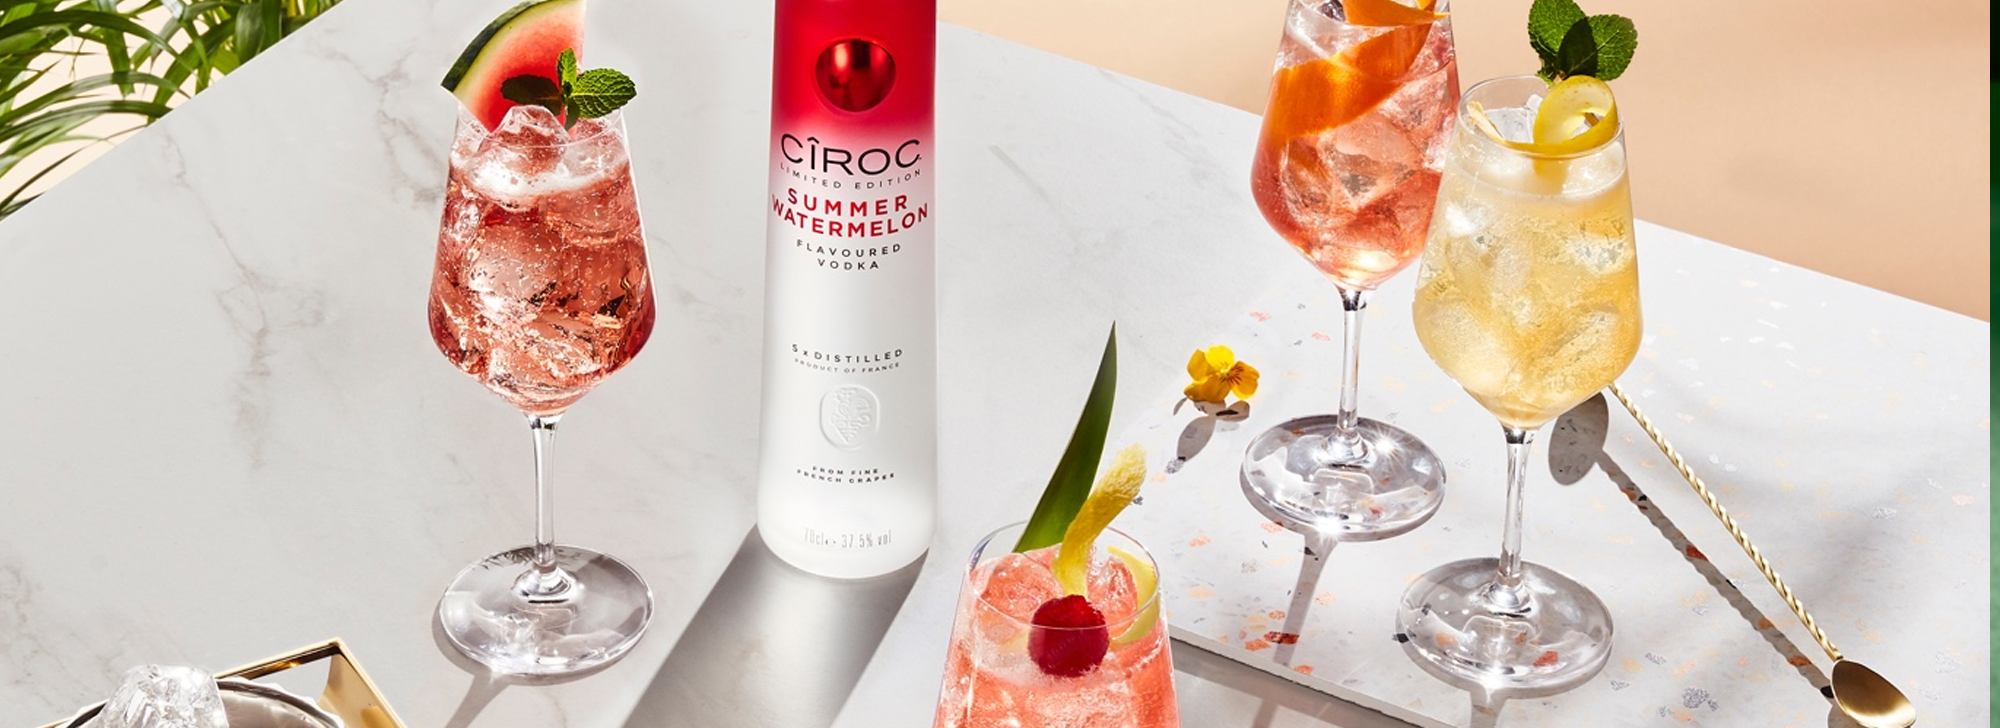 How to Make Cîroc Cocktail Recipes at Home